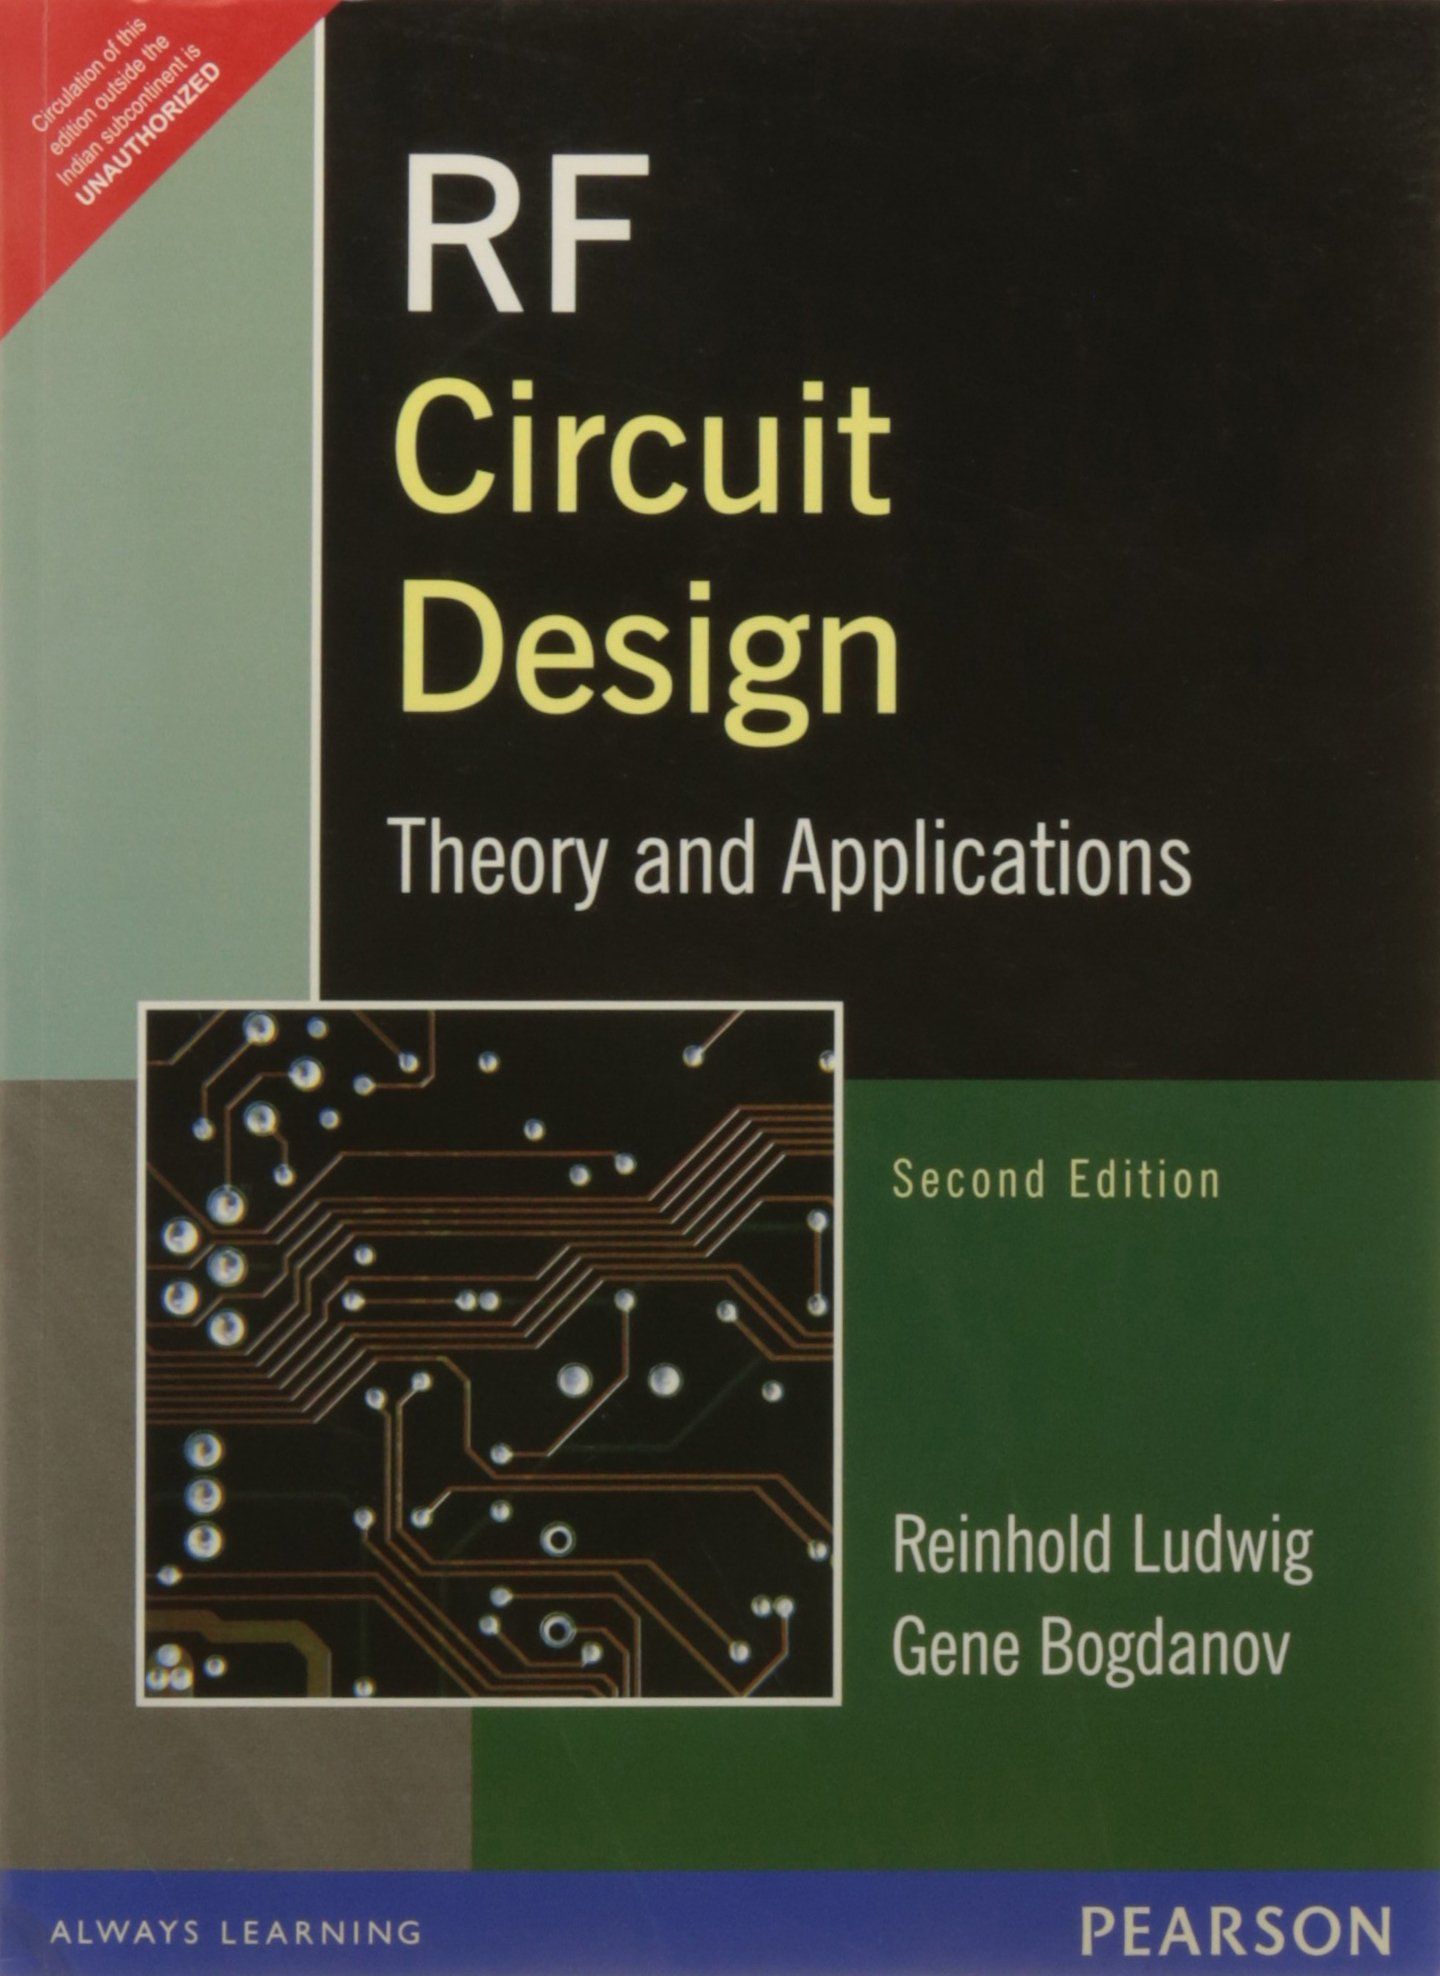 Buy Rf Circuit Design Theory And Application Second Edition Book Smart Chocolate Block Schematic Diagram Electronic Circuits Online At Low Prices In India